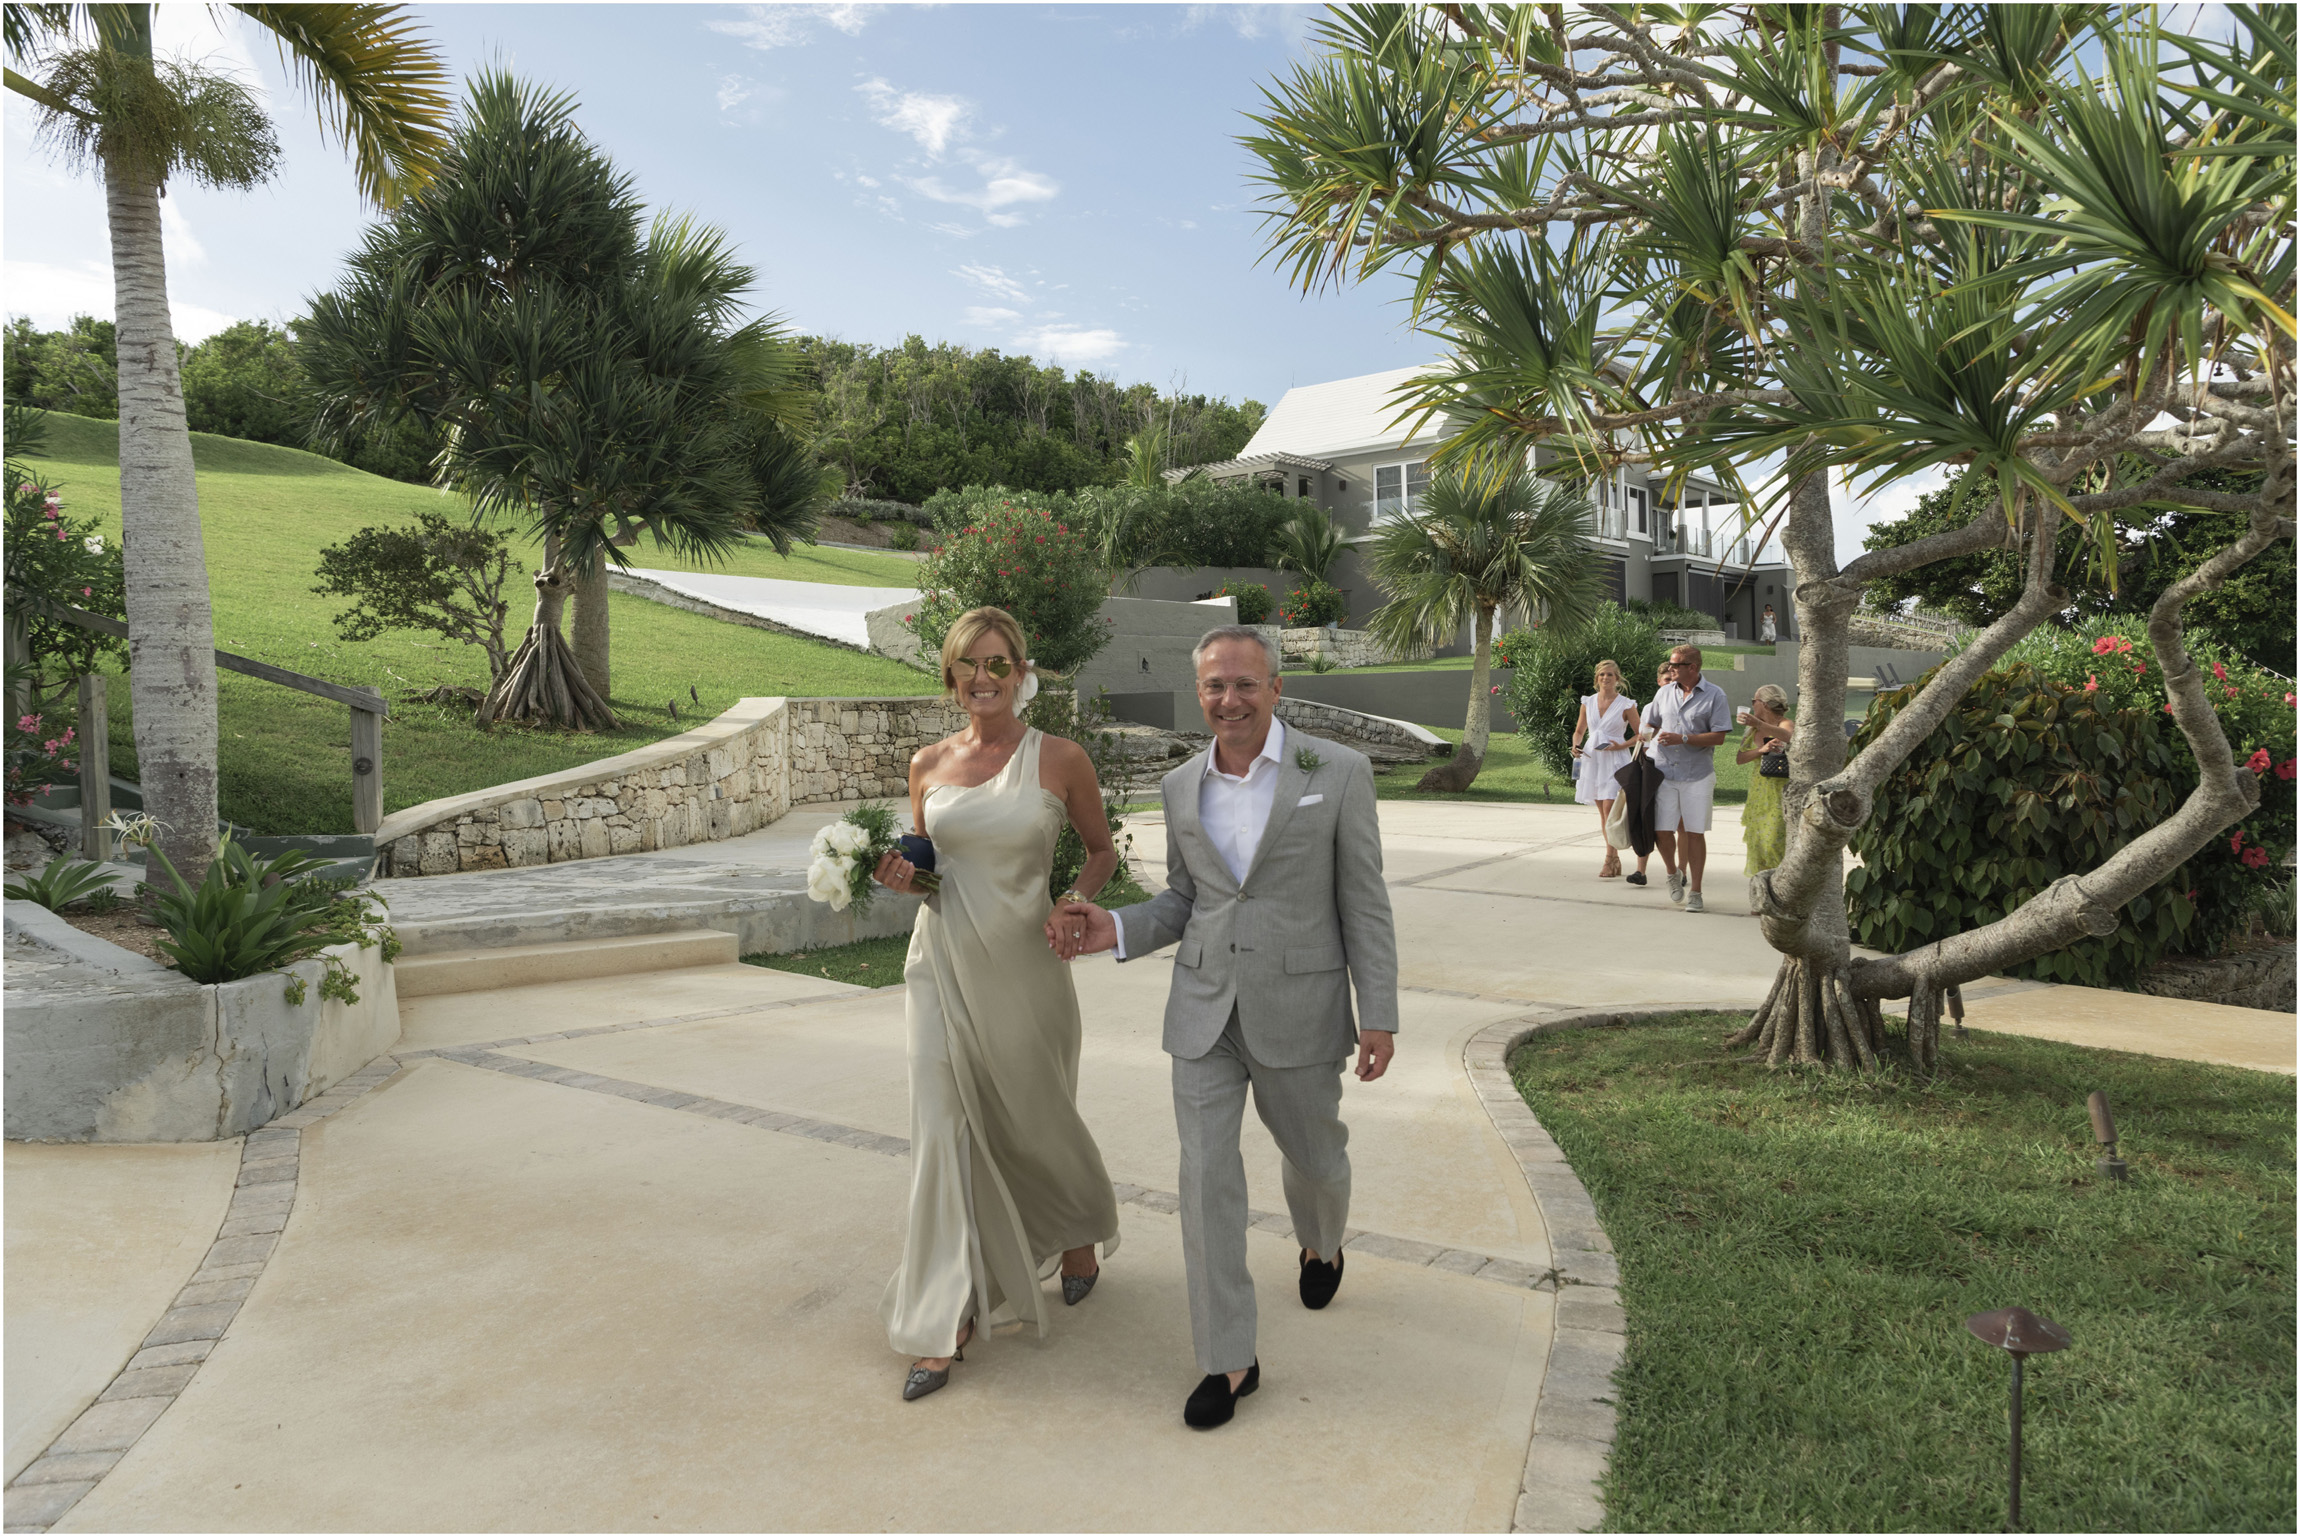 ©FianderFoto_Bermuda_Wedding_Photographer_Long_Island_Bermuda_Nancy_Ray_038.jpg